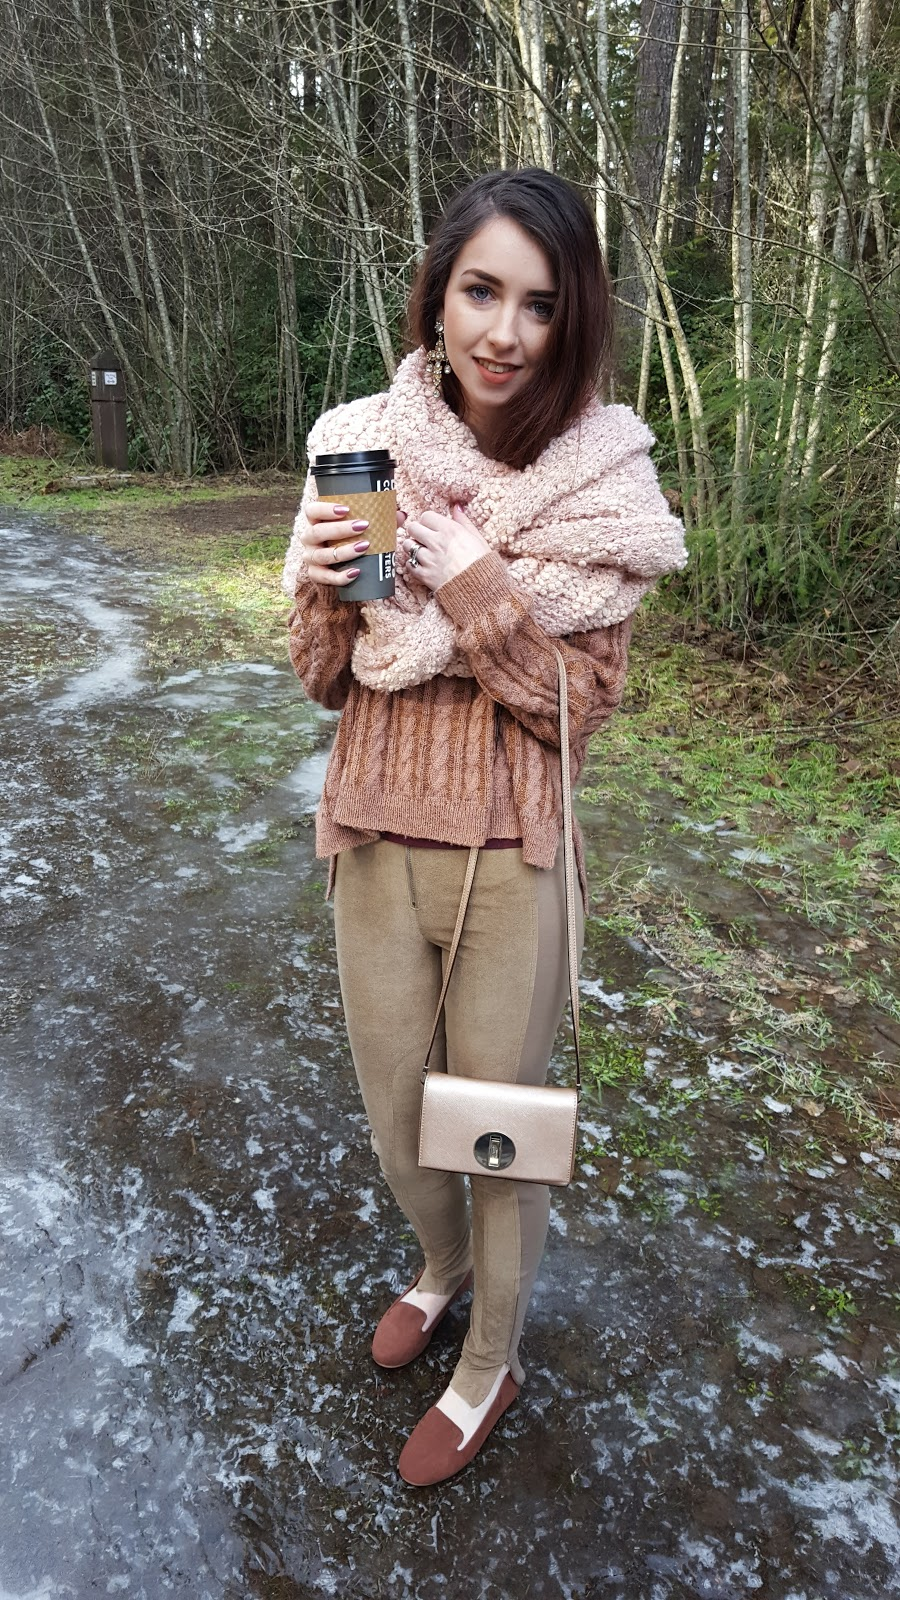 Winter outfit idea mixing neutrals and textures